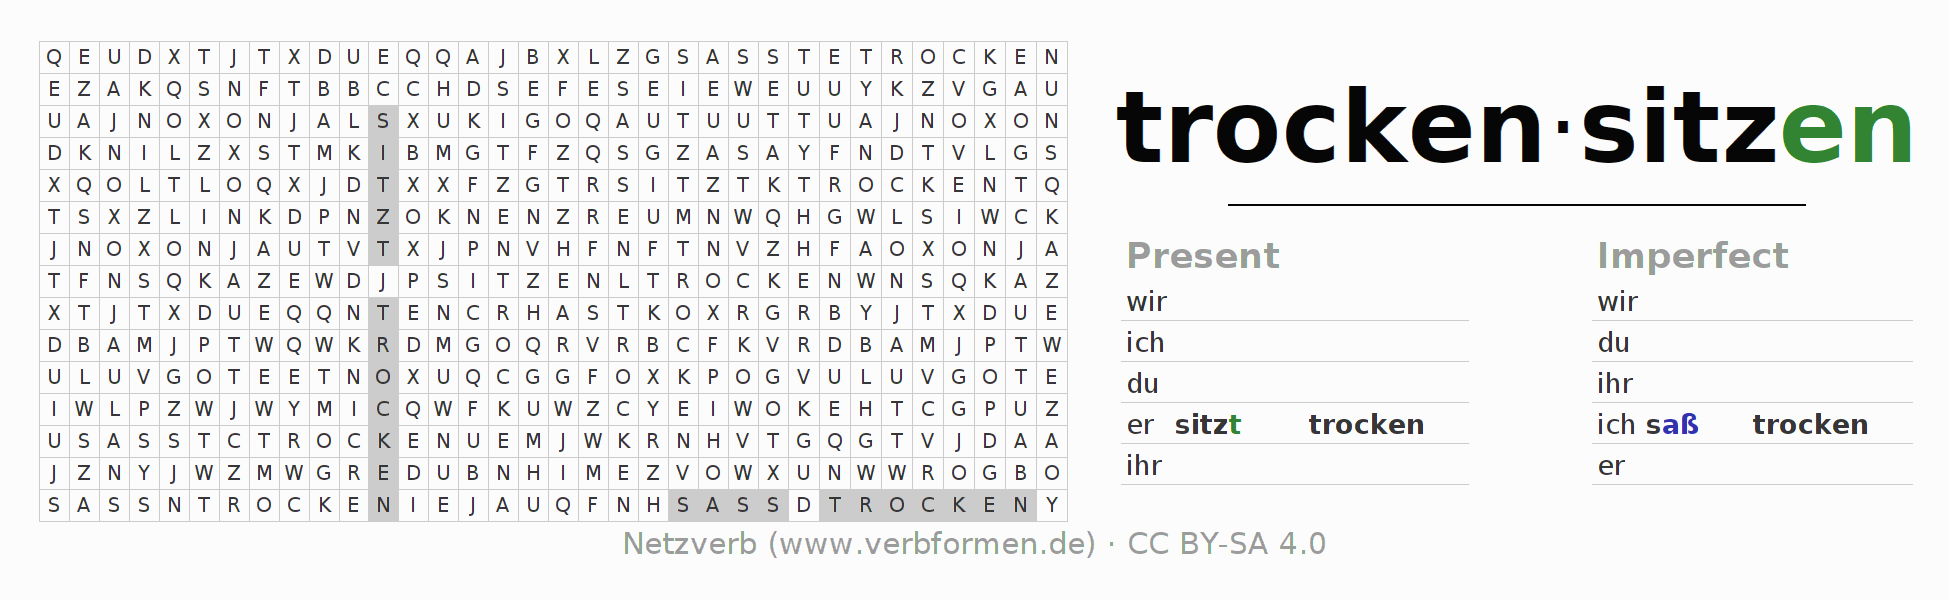 Word search puzzle for the conjugation of the verb trockensitzen (ist)